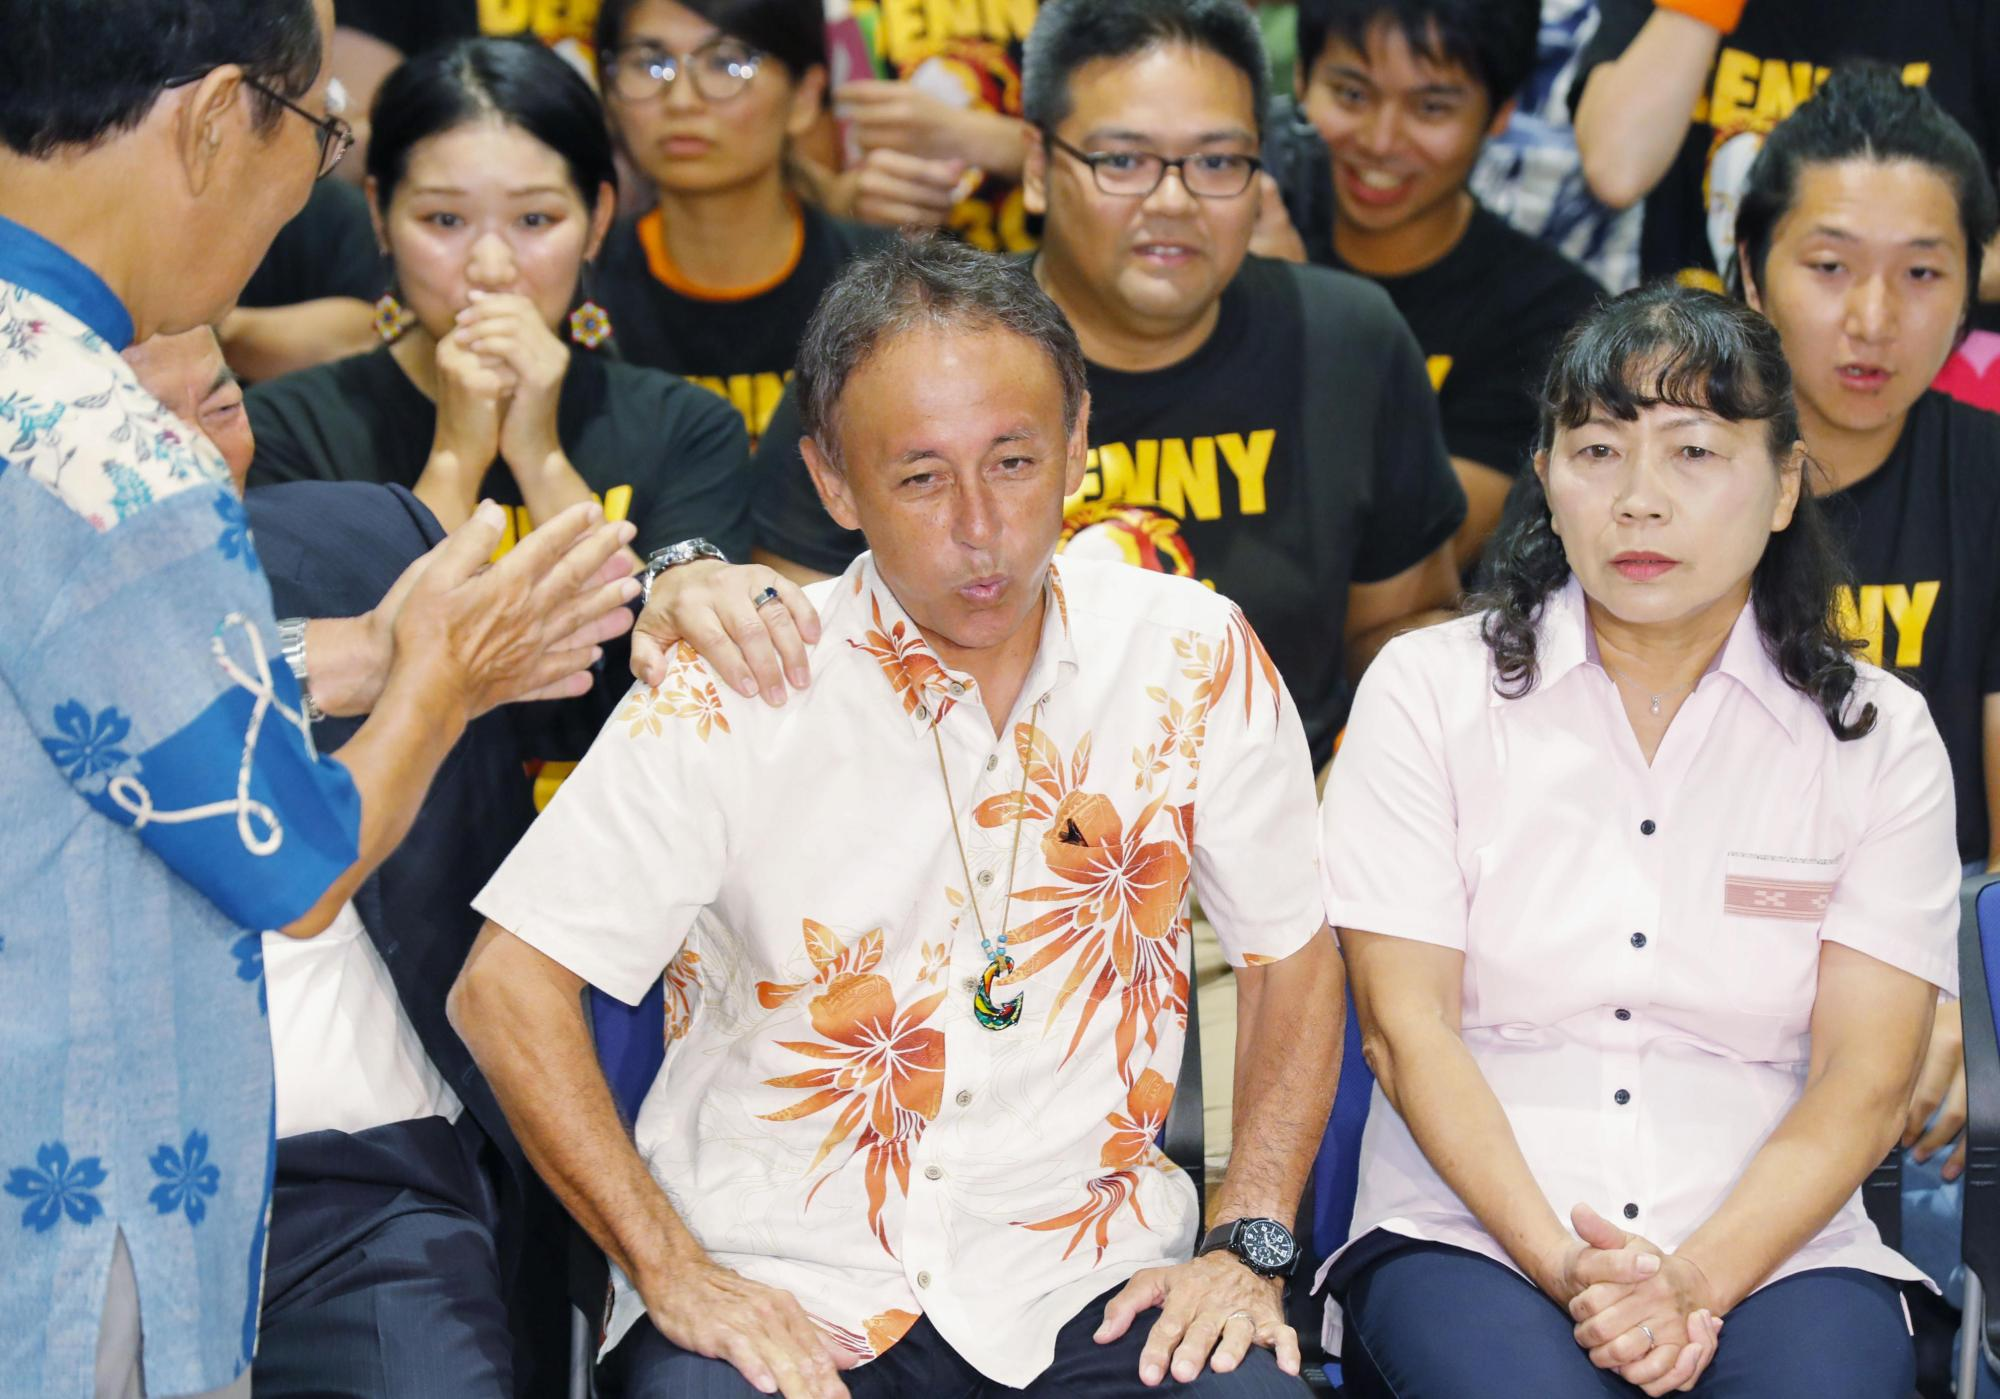 Denny Tamaki, center, the winner of the Okinawa gubernatorial race, watches the results on TV on Sunday in Naha. | KYODO